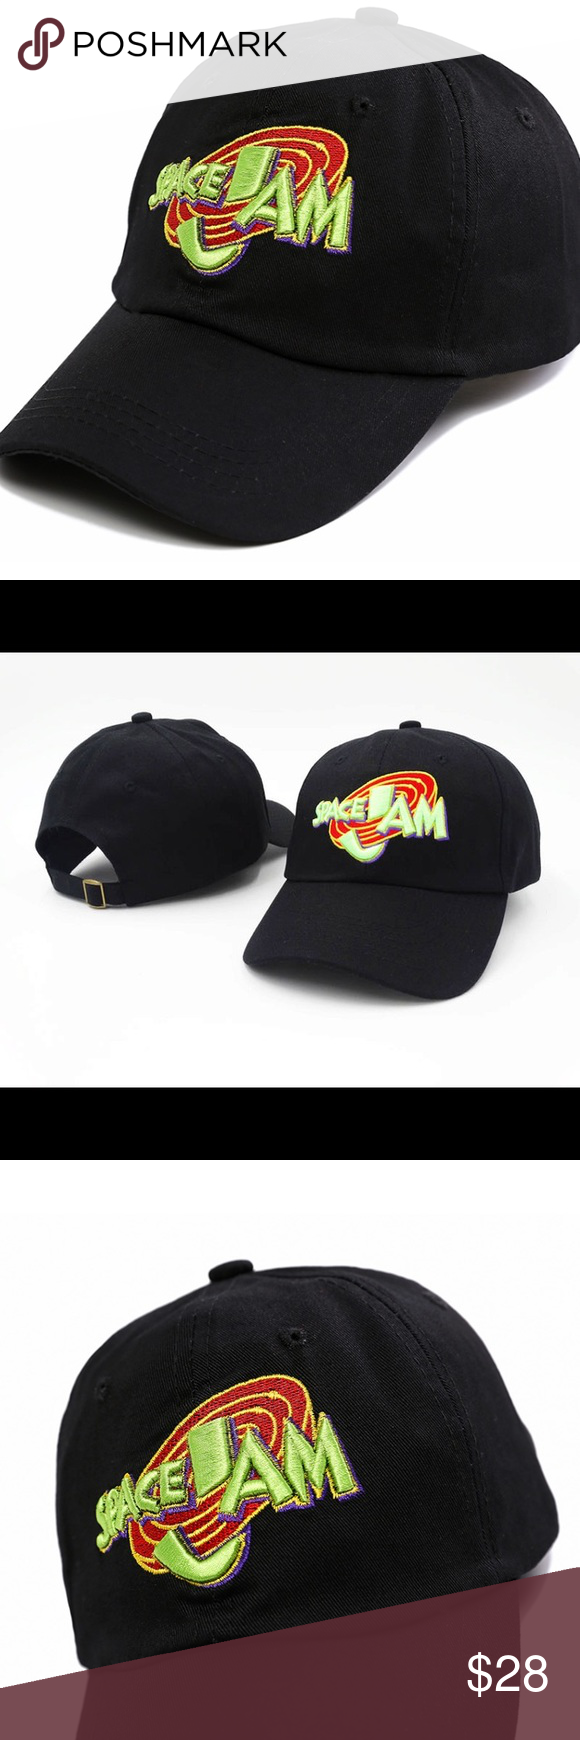 49c83902 Black Space Jam Tune Squad Dad Hat Cap Custom Embroidered Black Space Jam  Tune Squad Dad Hat Cap Size is Adjustable with a strap back.